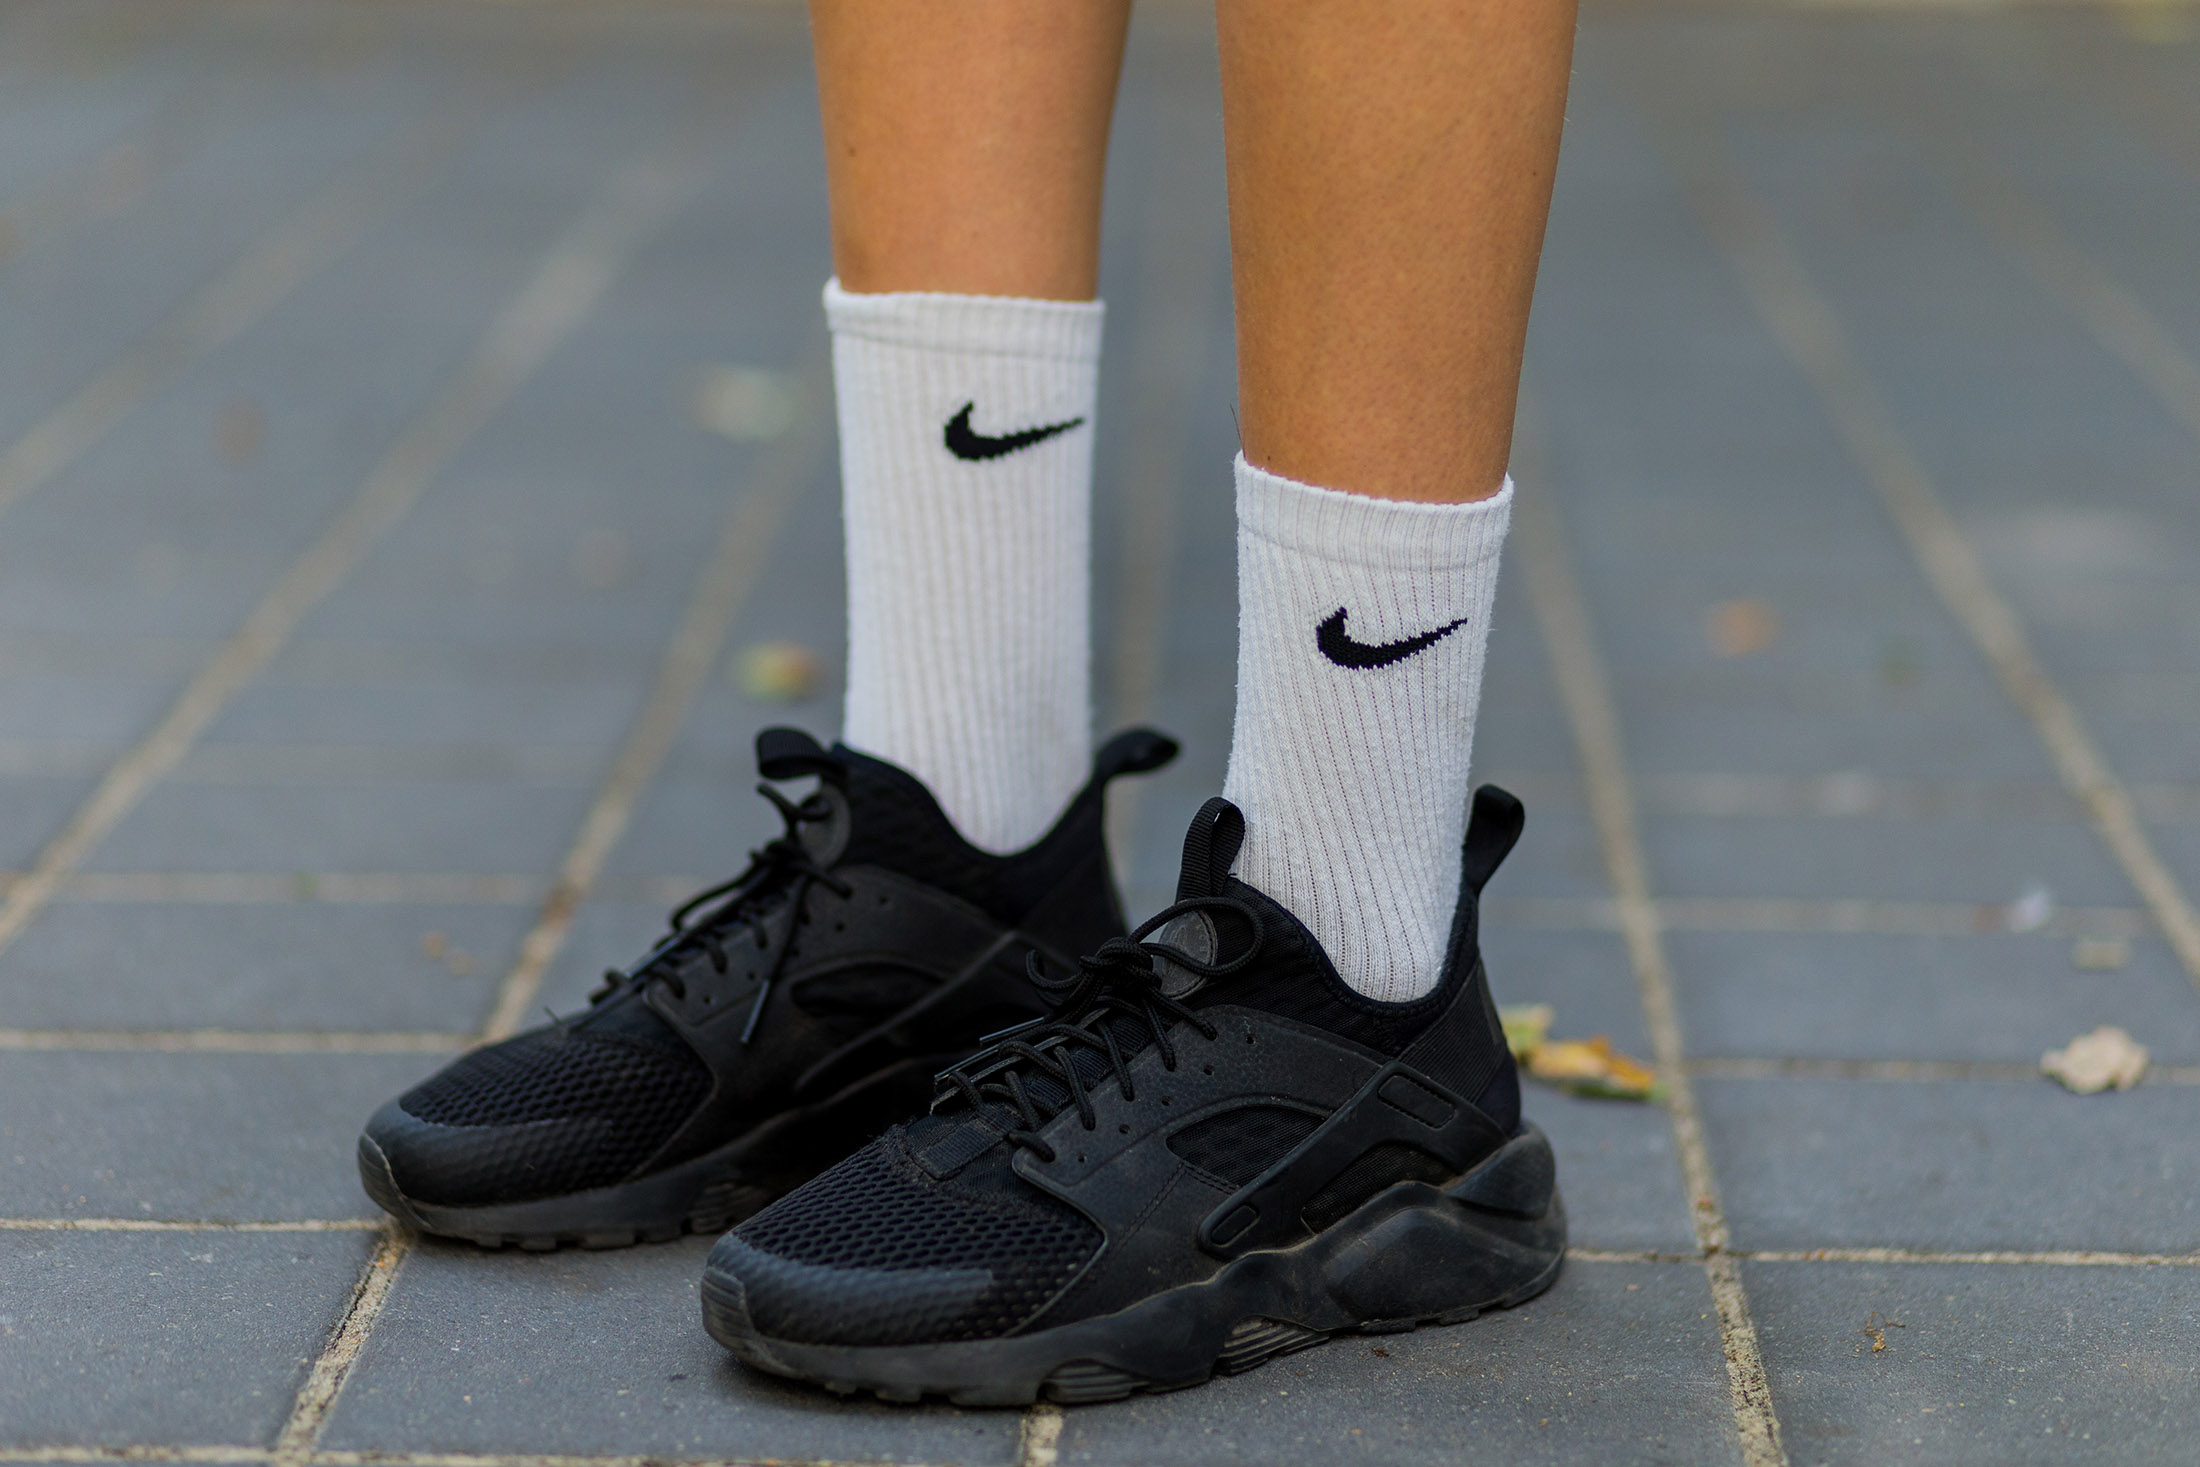 bloomberg.com - Faseeh Mangi - Sock Supplier for Nike Plans Biggest Pakistan Private Sector IPO